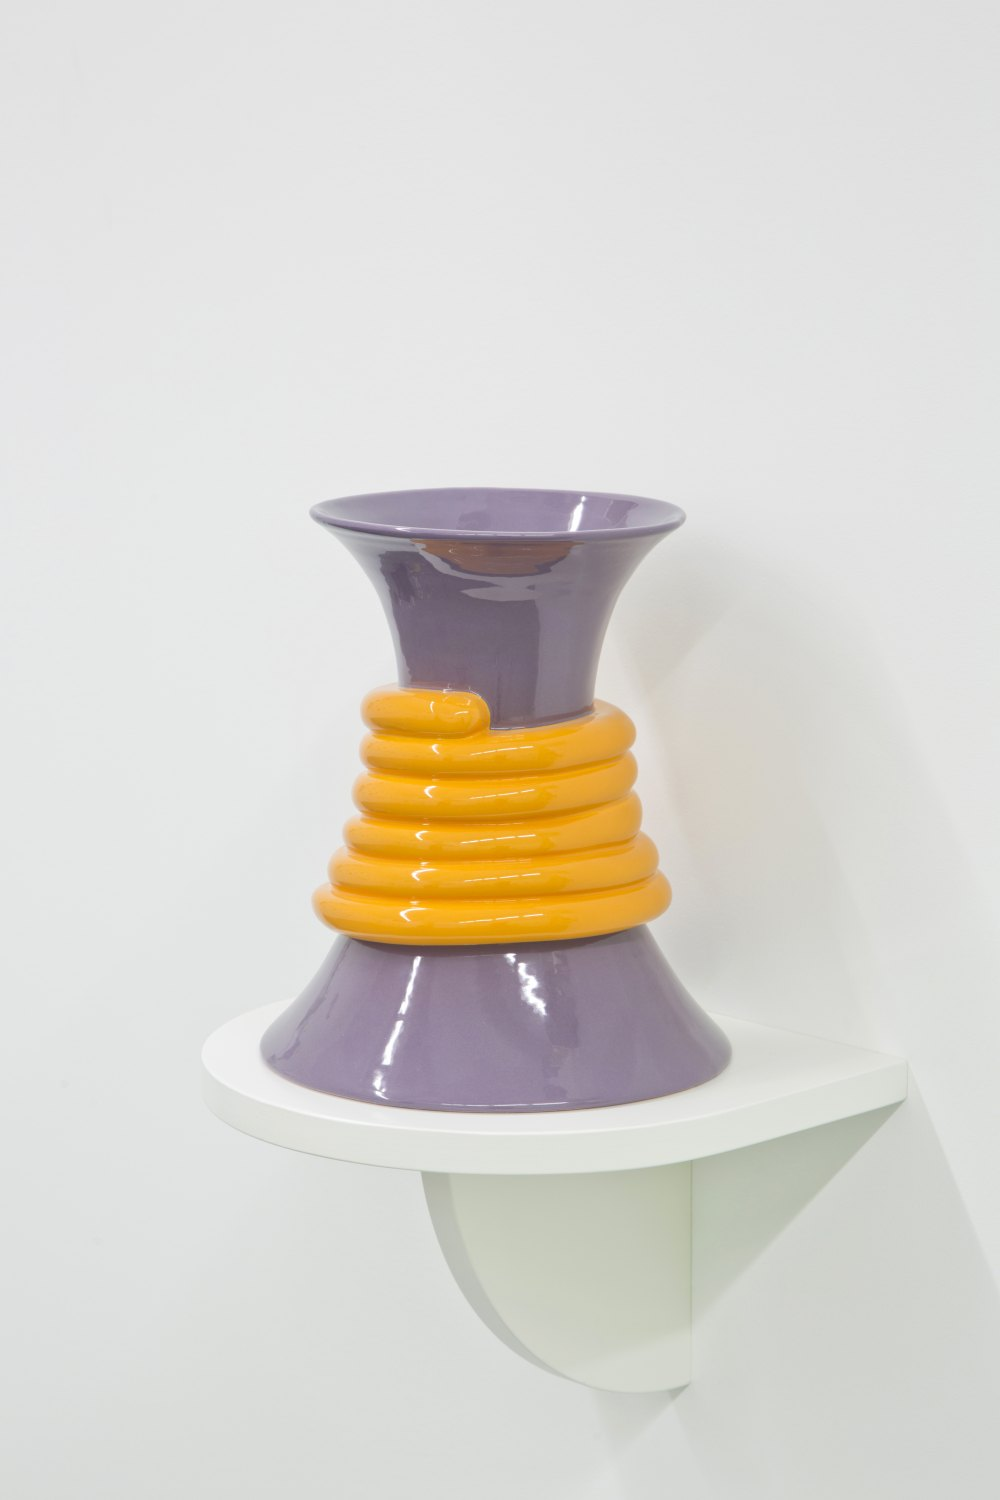 Marc Camille Chaimowicz Rope vase, 2014 Glazed ceramic, 30 cm × ∅ 23 cm